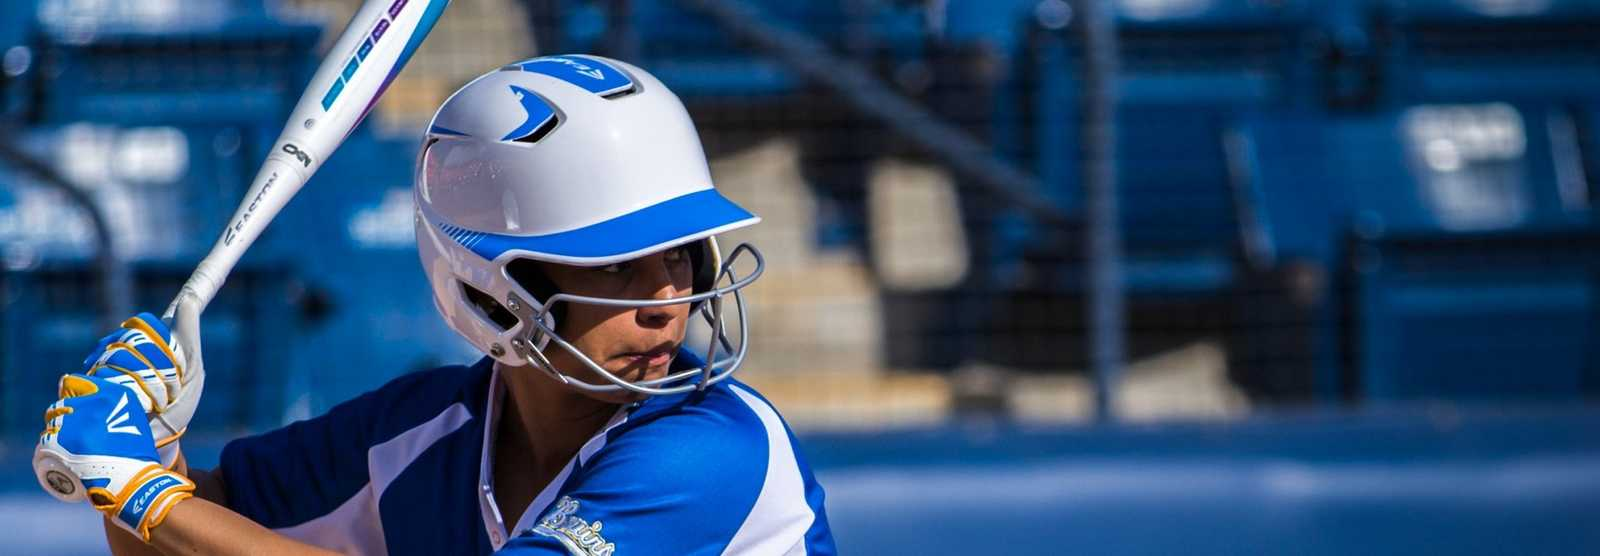 fastpitch-softball-helmet-mask